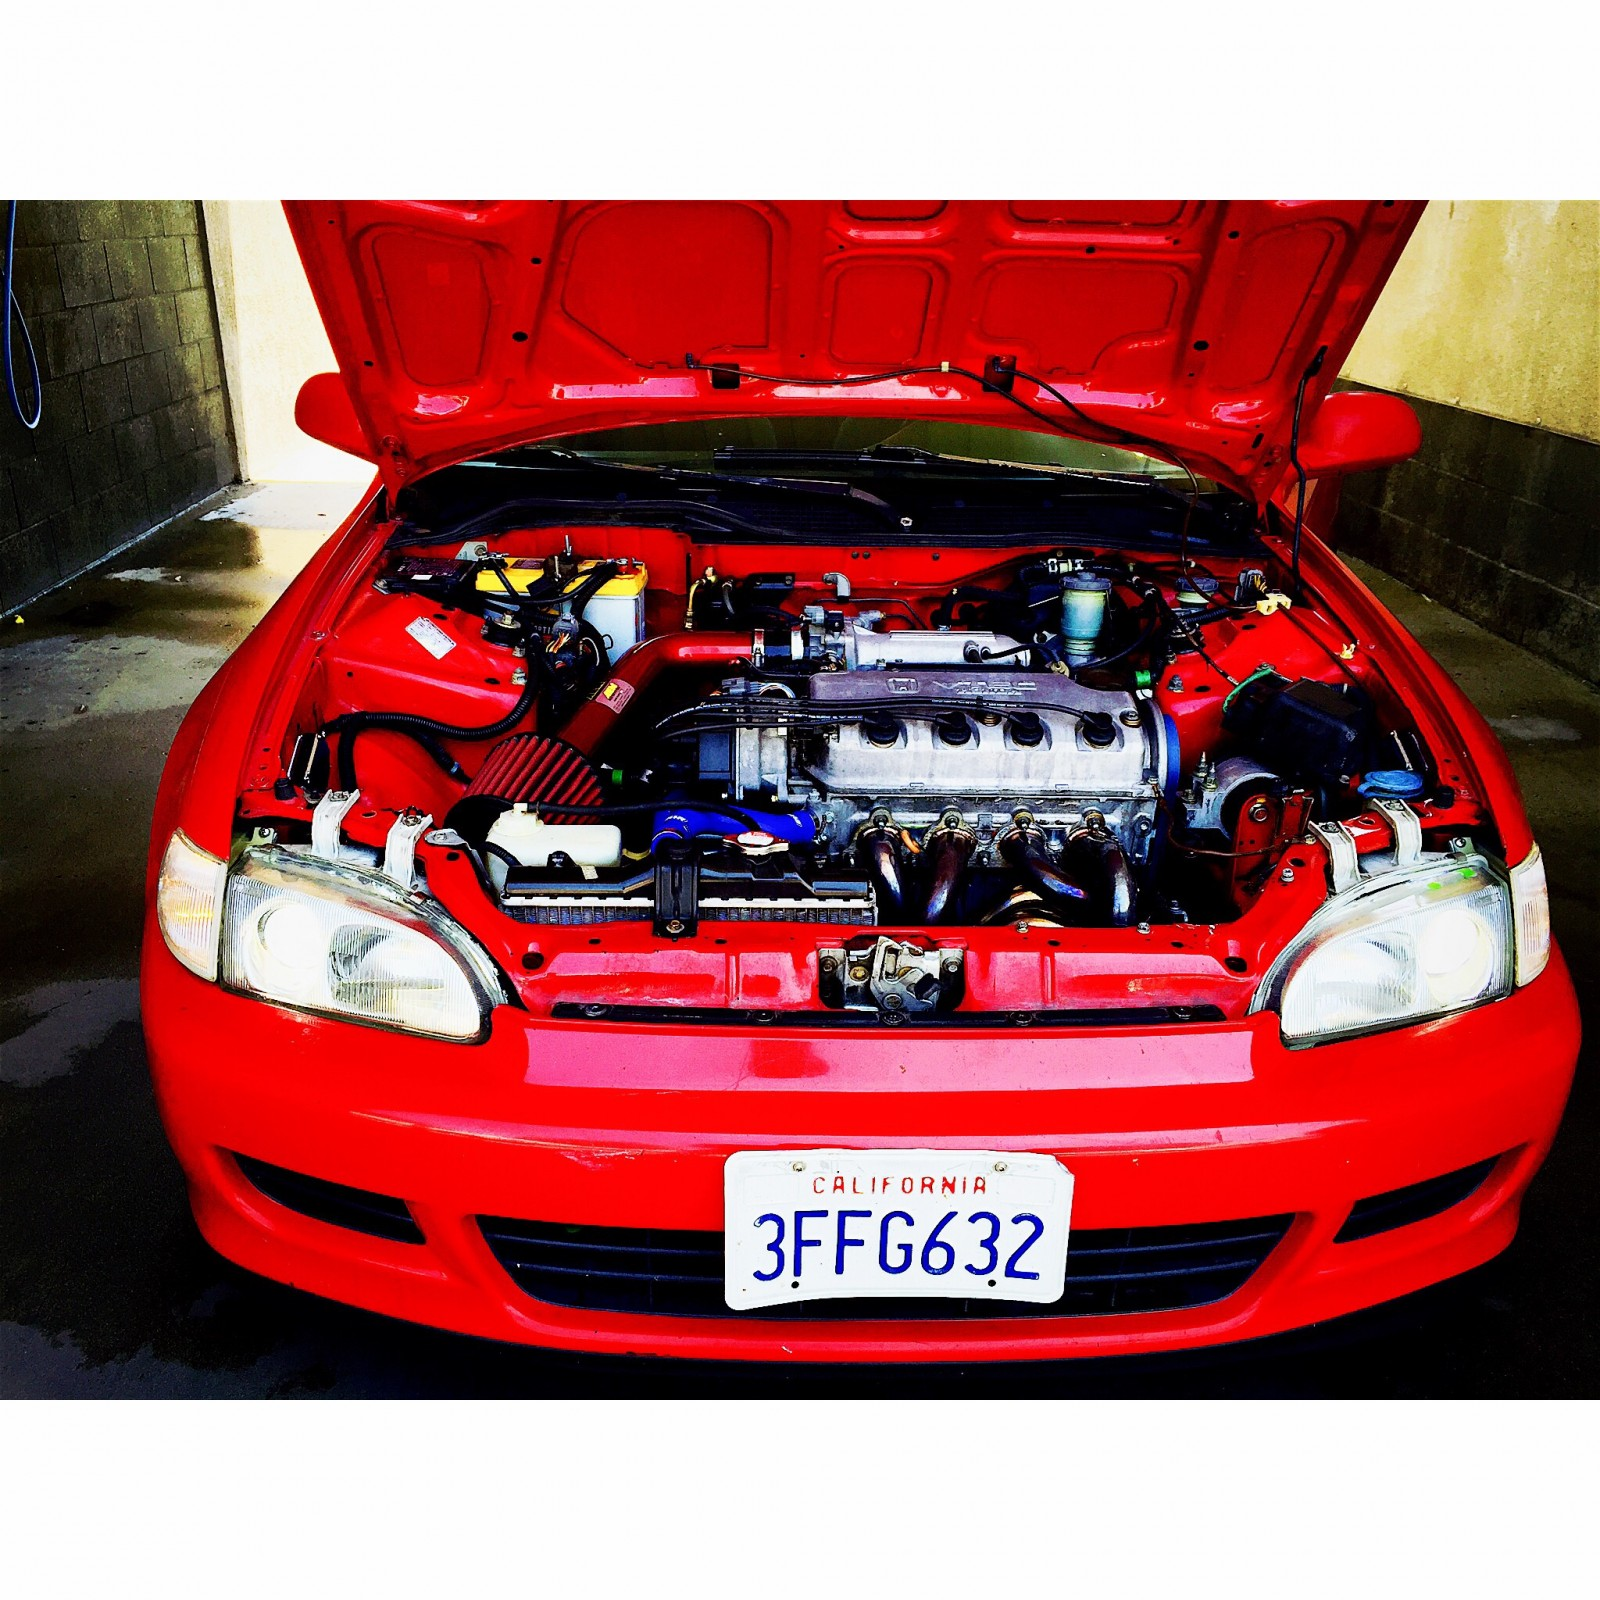 Honda D16z6 Supercharger: Share Your Horsepower And Torque With